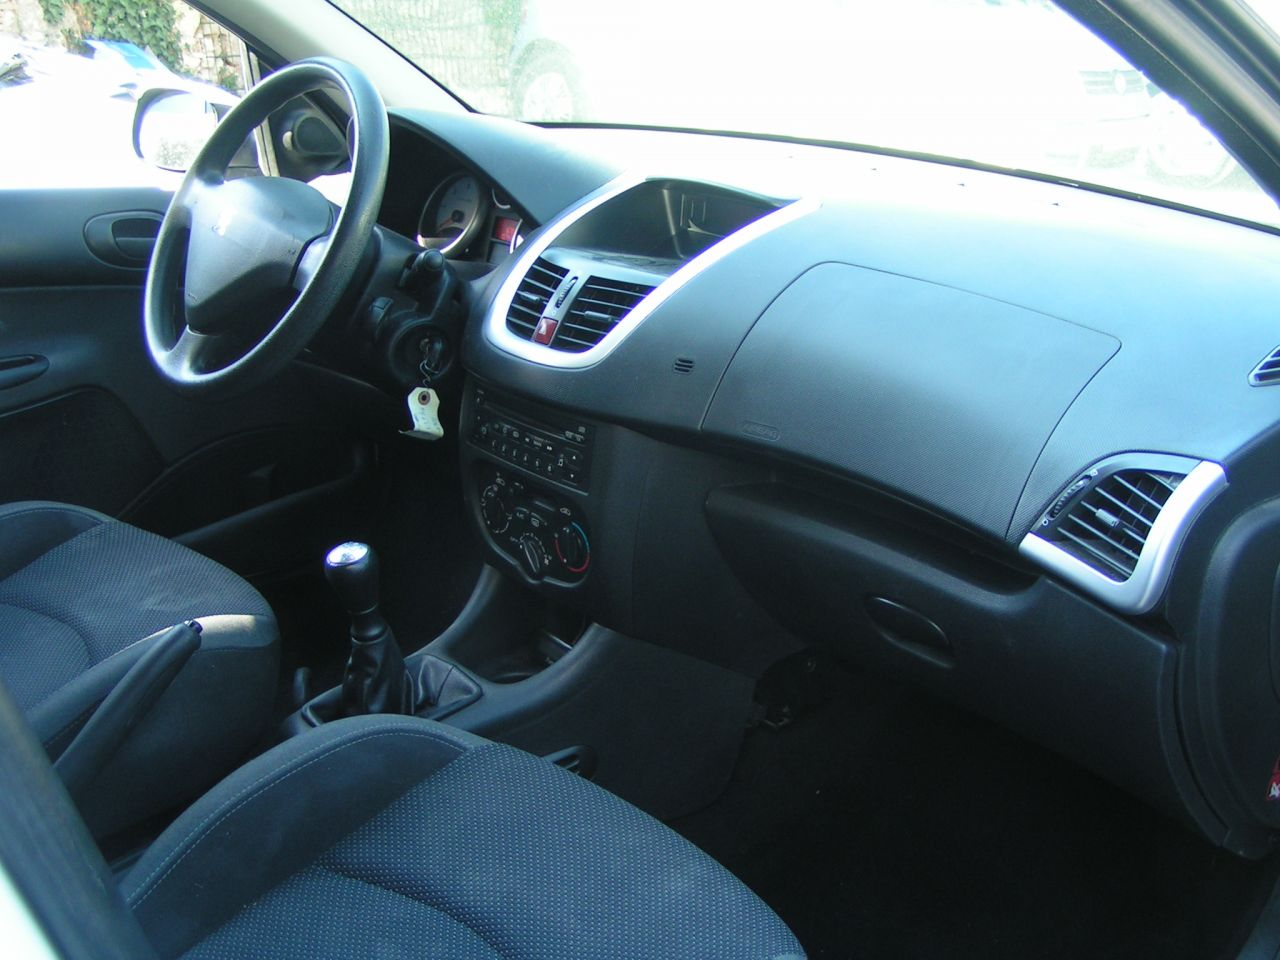 206 hdi trendy 107400 km 1ere main gtie 3 mois reprise for Interieur 206